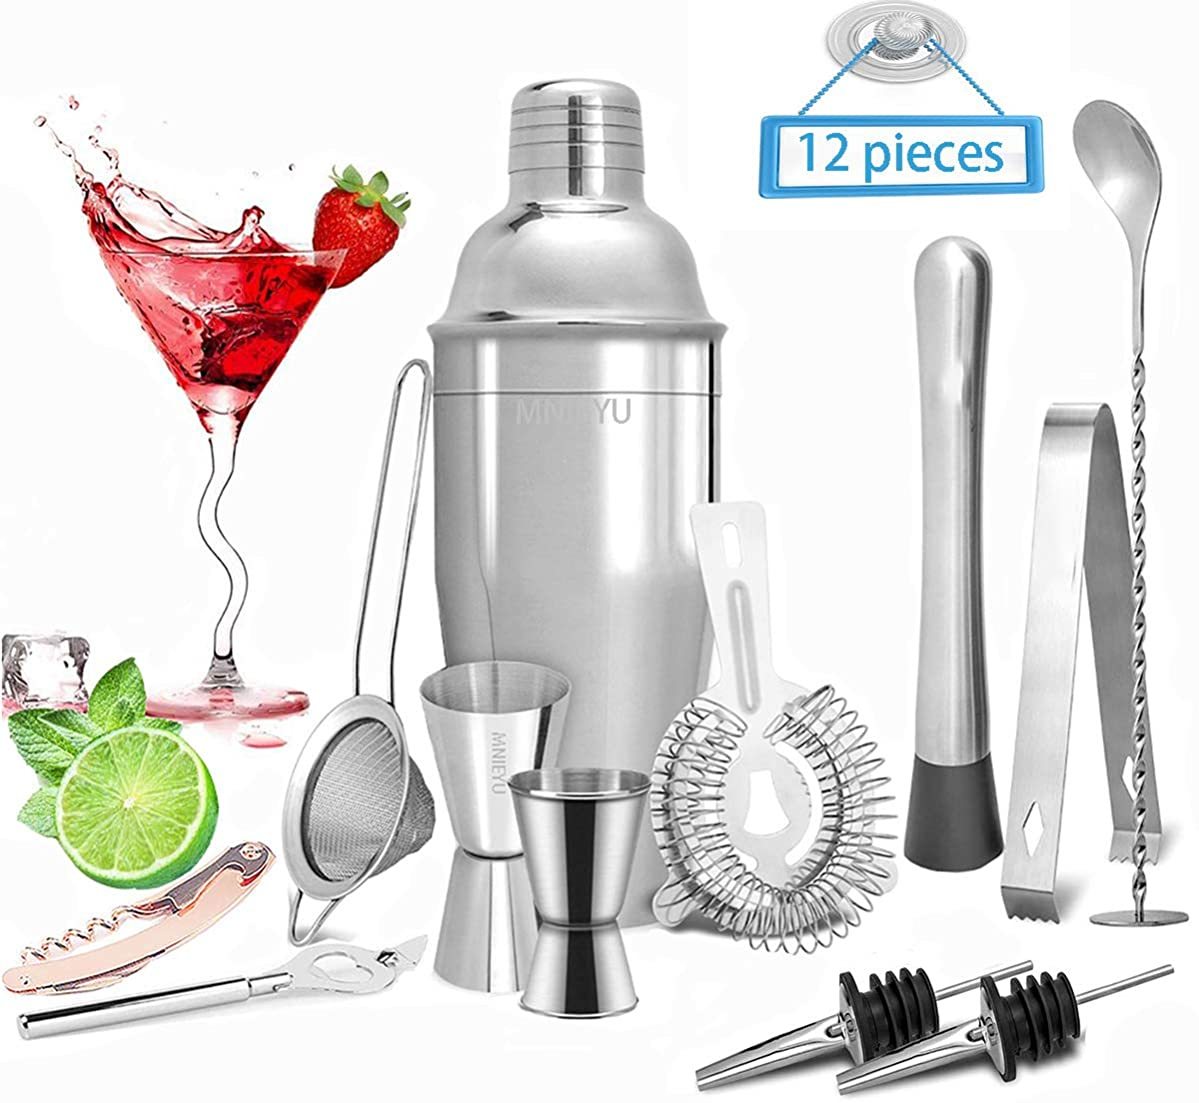 MNIEYU Bartender Kit: 12 Piece Bartender Kit Stainless Steel Cocktail Shaker- 25 Oz Martini Mixer With Strainer- Bar Tool Set For Home and Professional Bartending - Exclusive Cocktail Picks